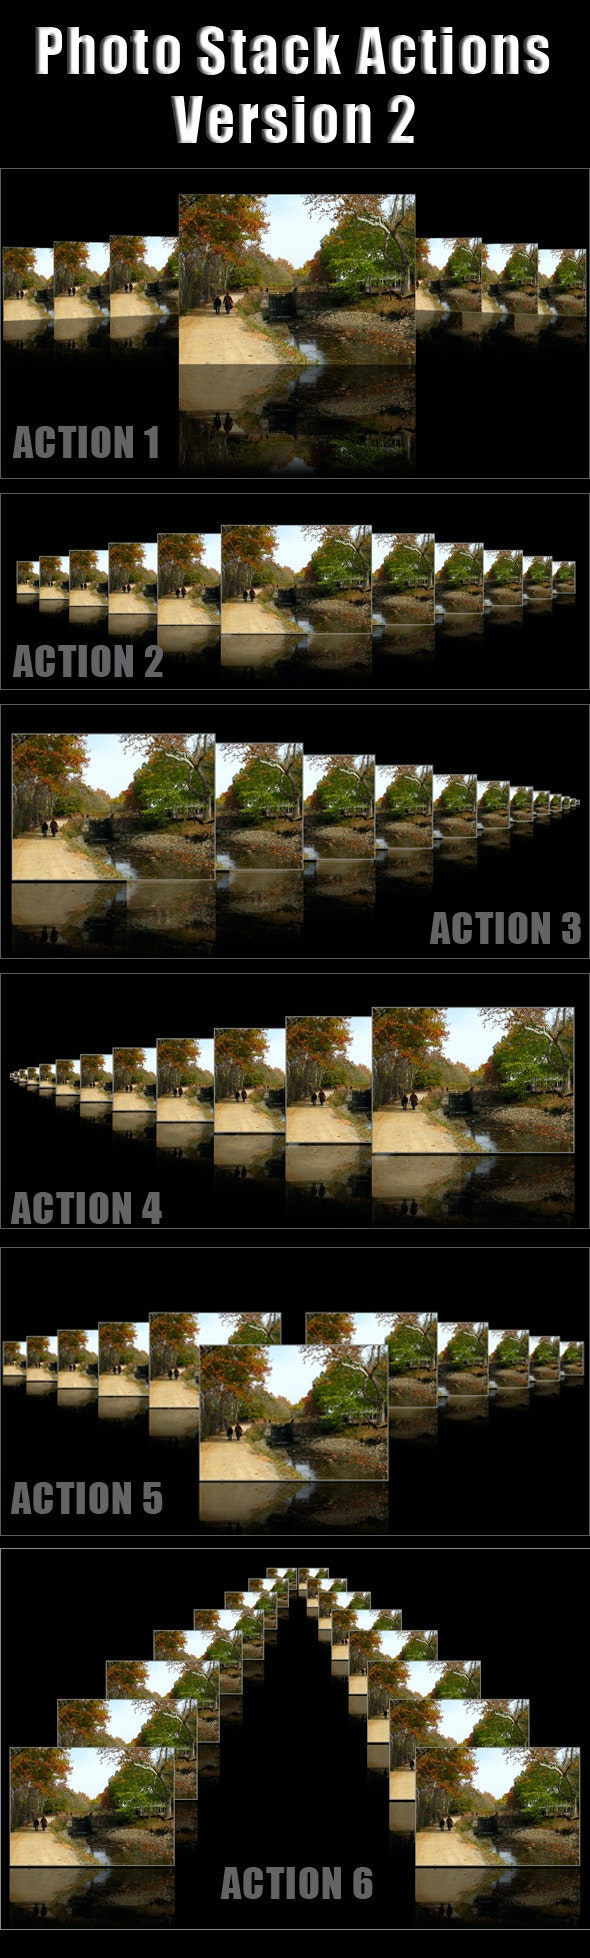 Different Photo Stack Actions - Utilities Actions